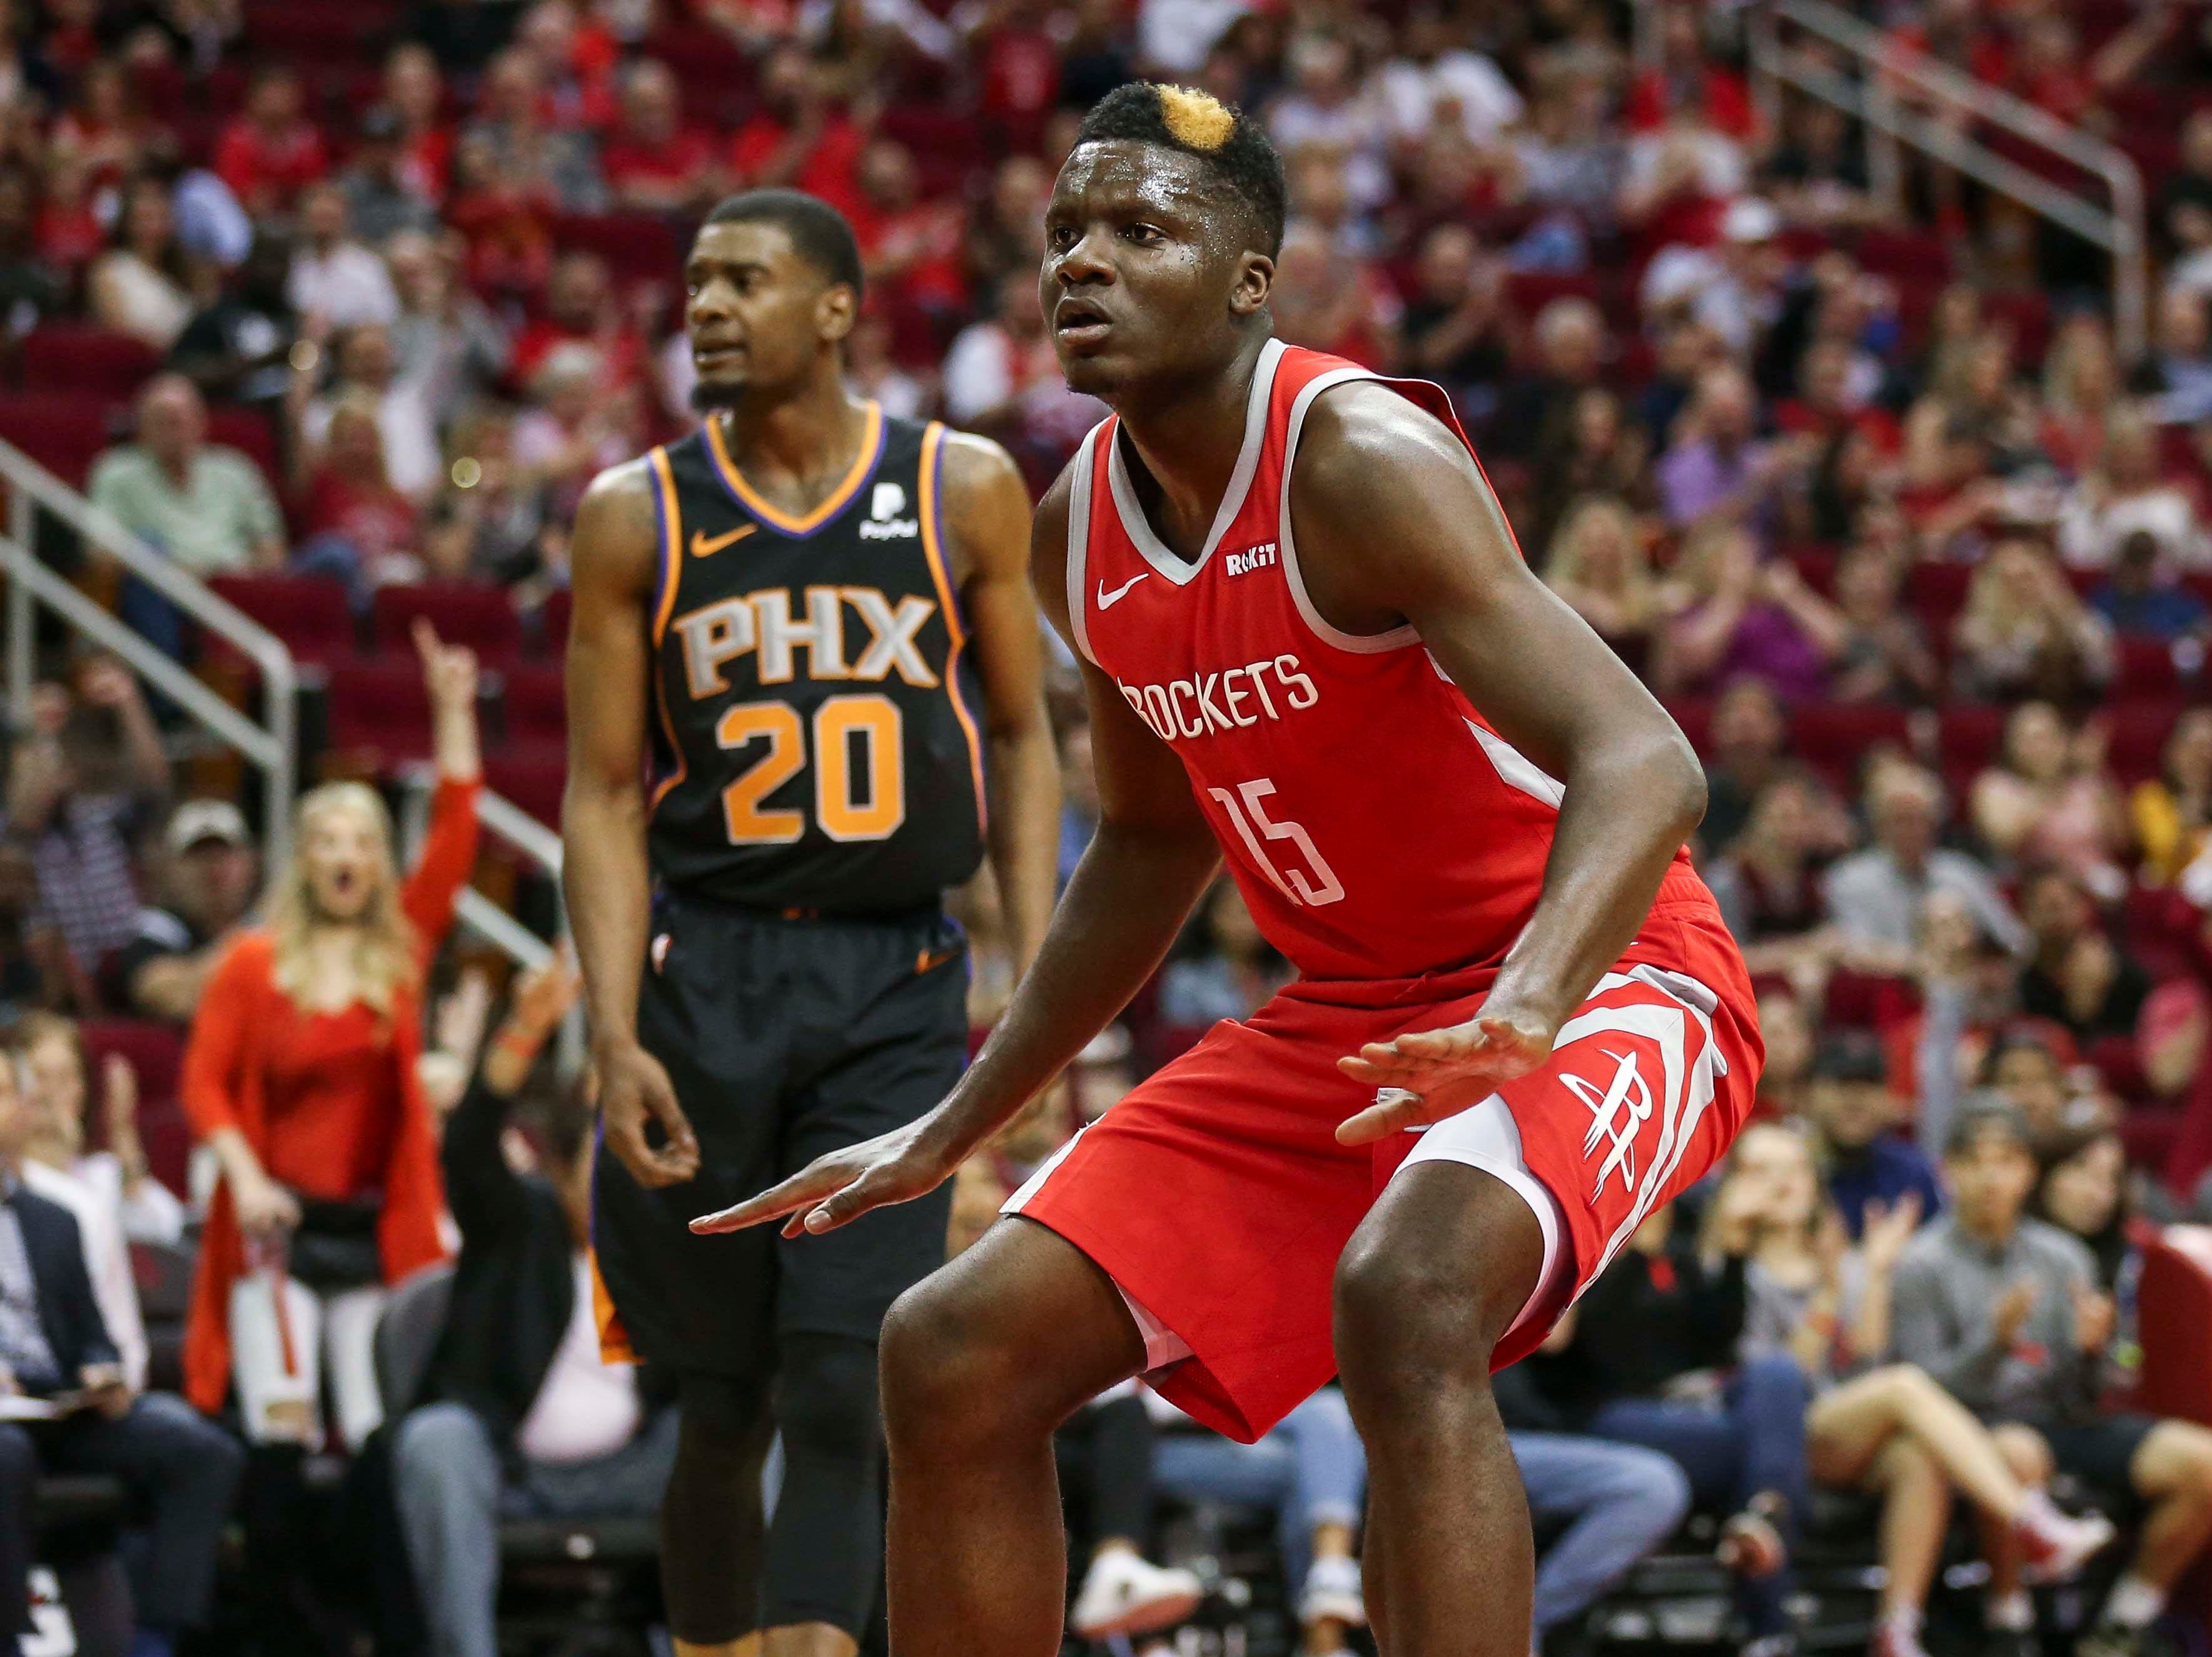 Apr 7, 2019; Houston, TX, USA; Houston Rockets center Clint Capela (15) and Phoenix Suns forward Josh Jackson (20) react after Capela scores a basket during the first quarter at Toyota Center. Mandatory Credit: Troy Taormina-USA TODAY Sports